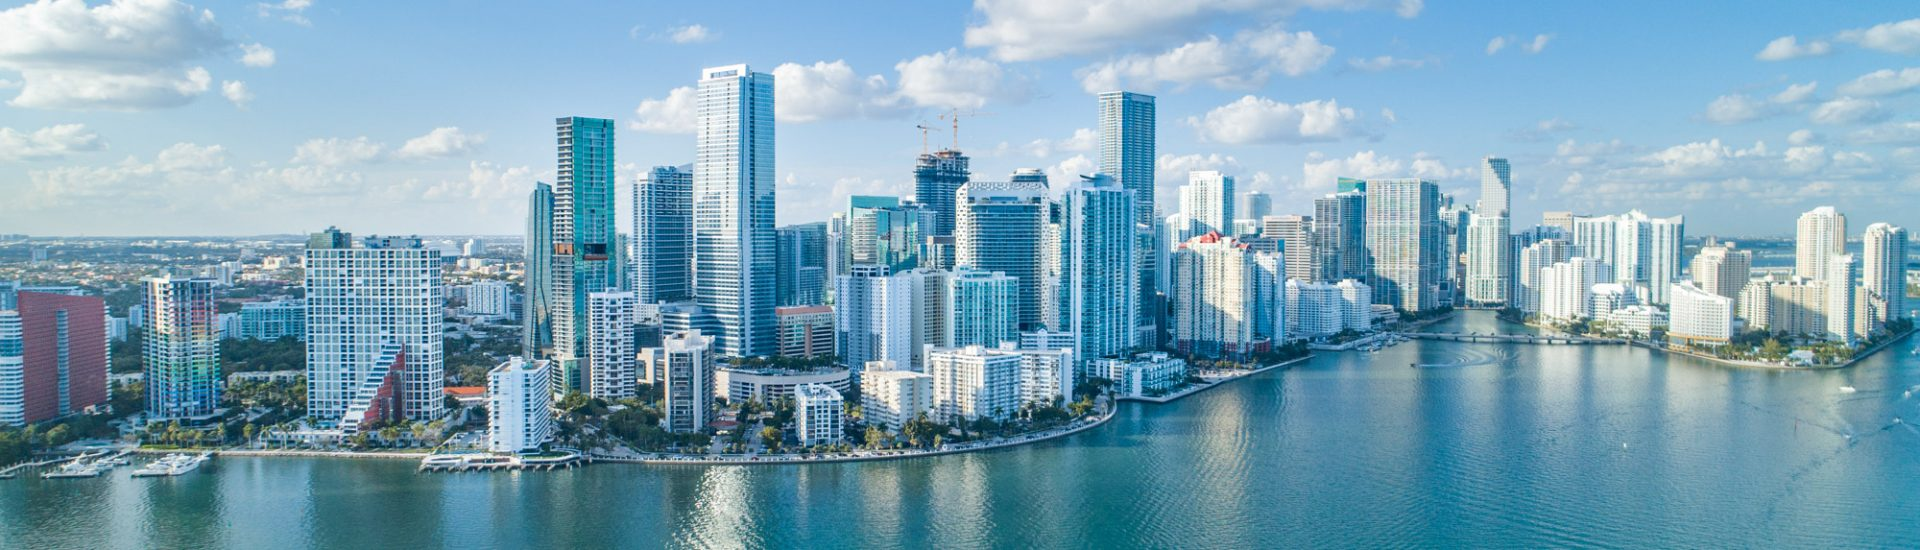 An aerial shot of Brickell Key, with downtown cityscape. A flyover of Brickell Key is one of the best places to visit in Florida and among the many fun things to do in Florida.